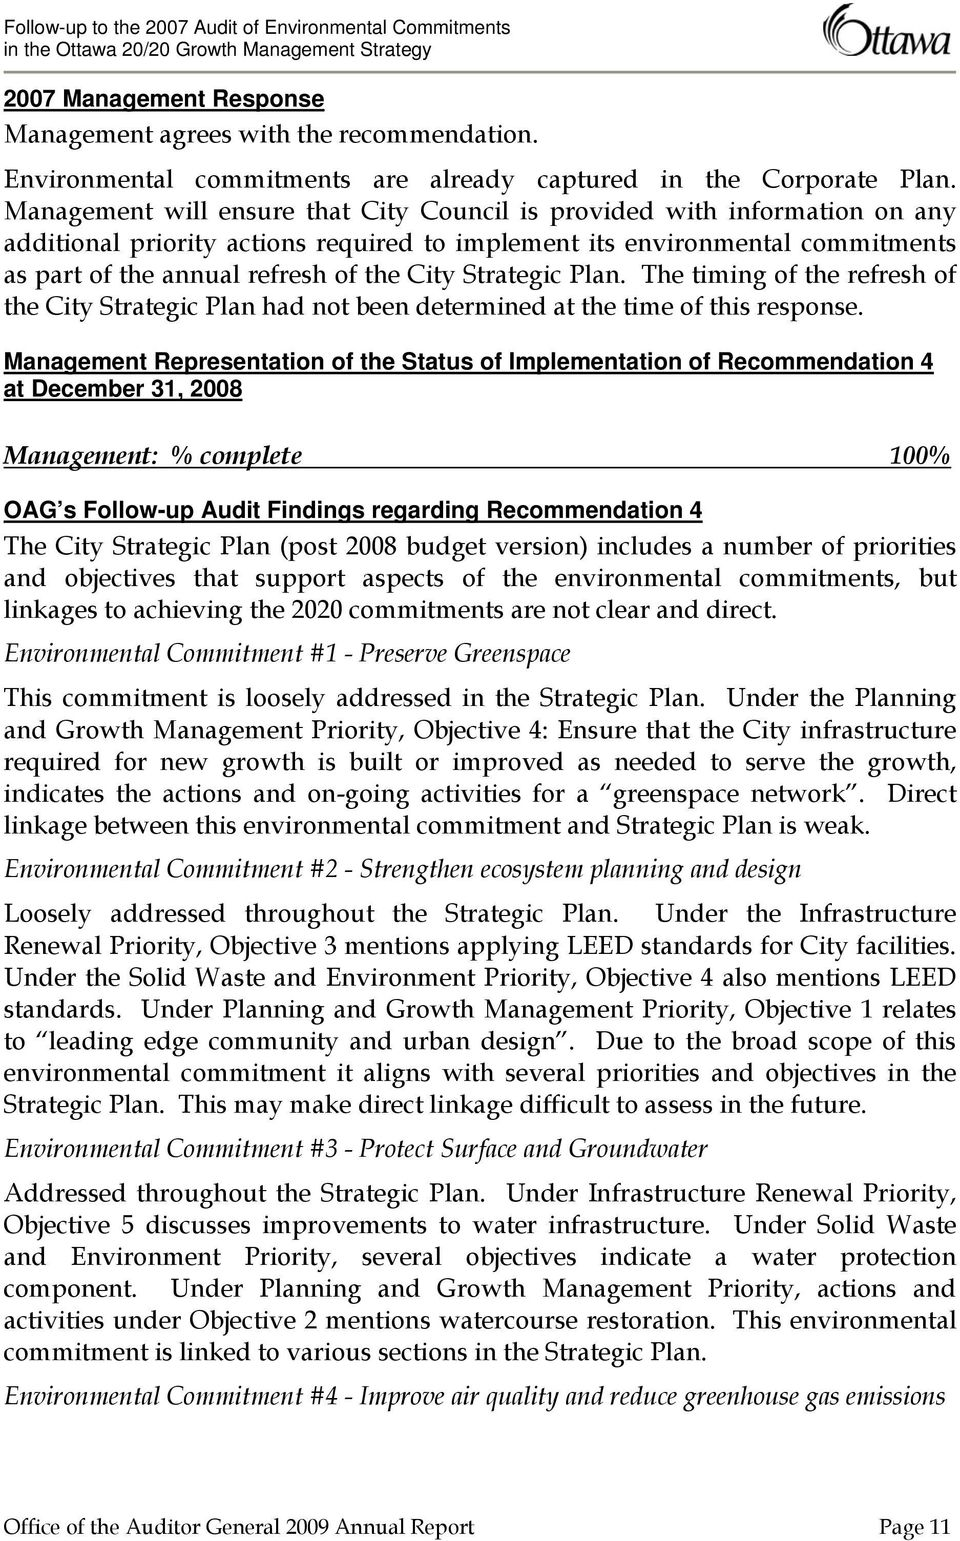 Strategic Plan. The timing of the refresh of the City Strategic Plan had not been determined at the time of this response.